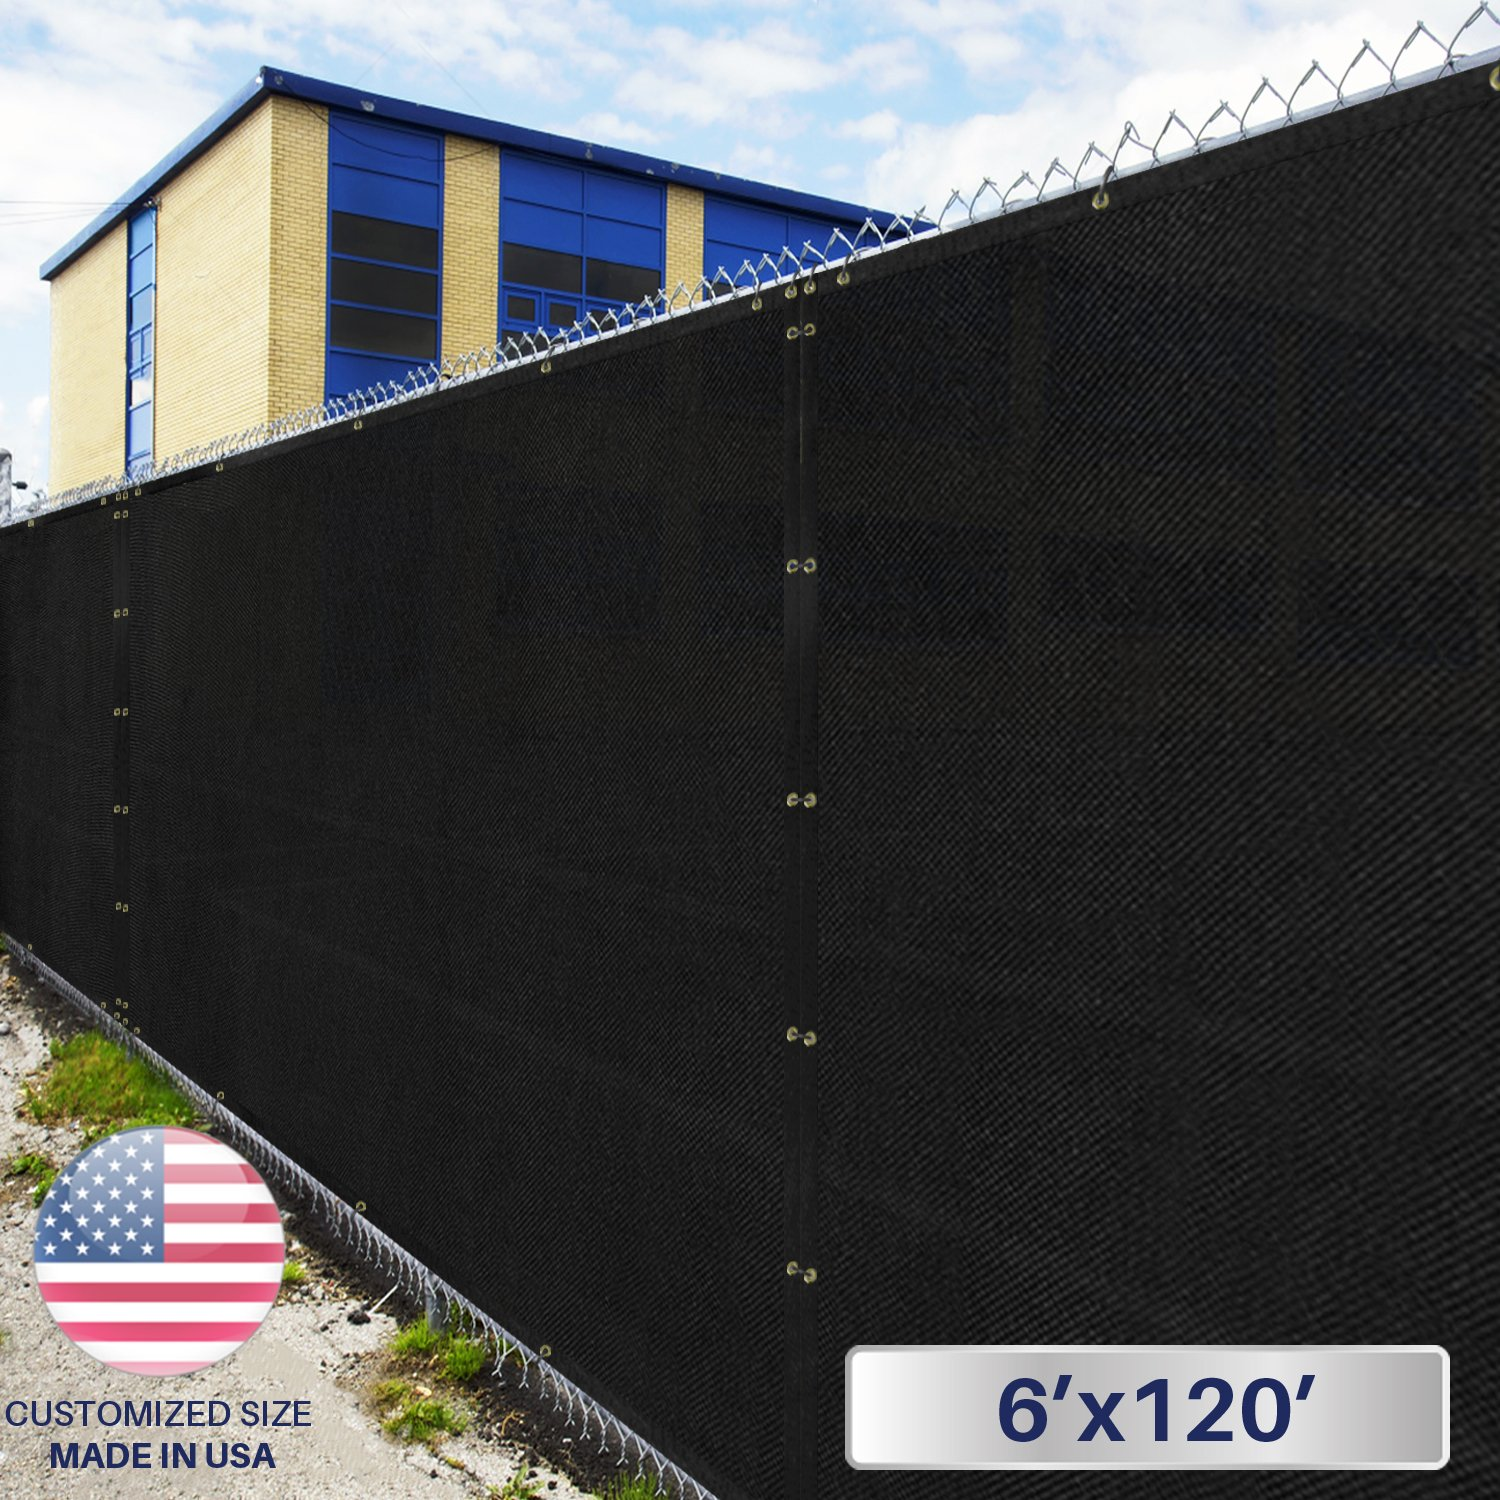 6' x 120' Privacy Fence Screen in Black with Brass Grommet 85% Blockage Windscreen Outdoor Mesh Fencing Cover Netting 150GSM Fabric - Custom Size